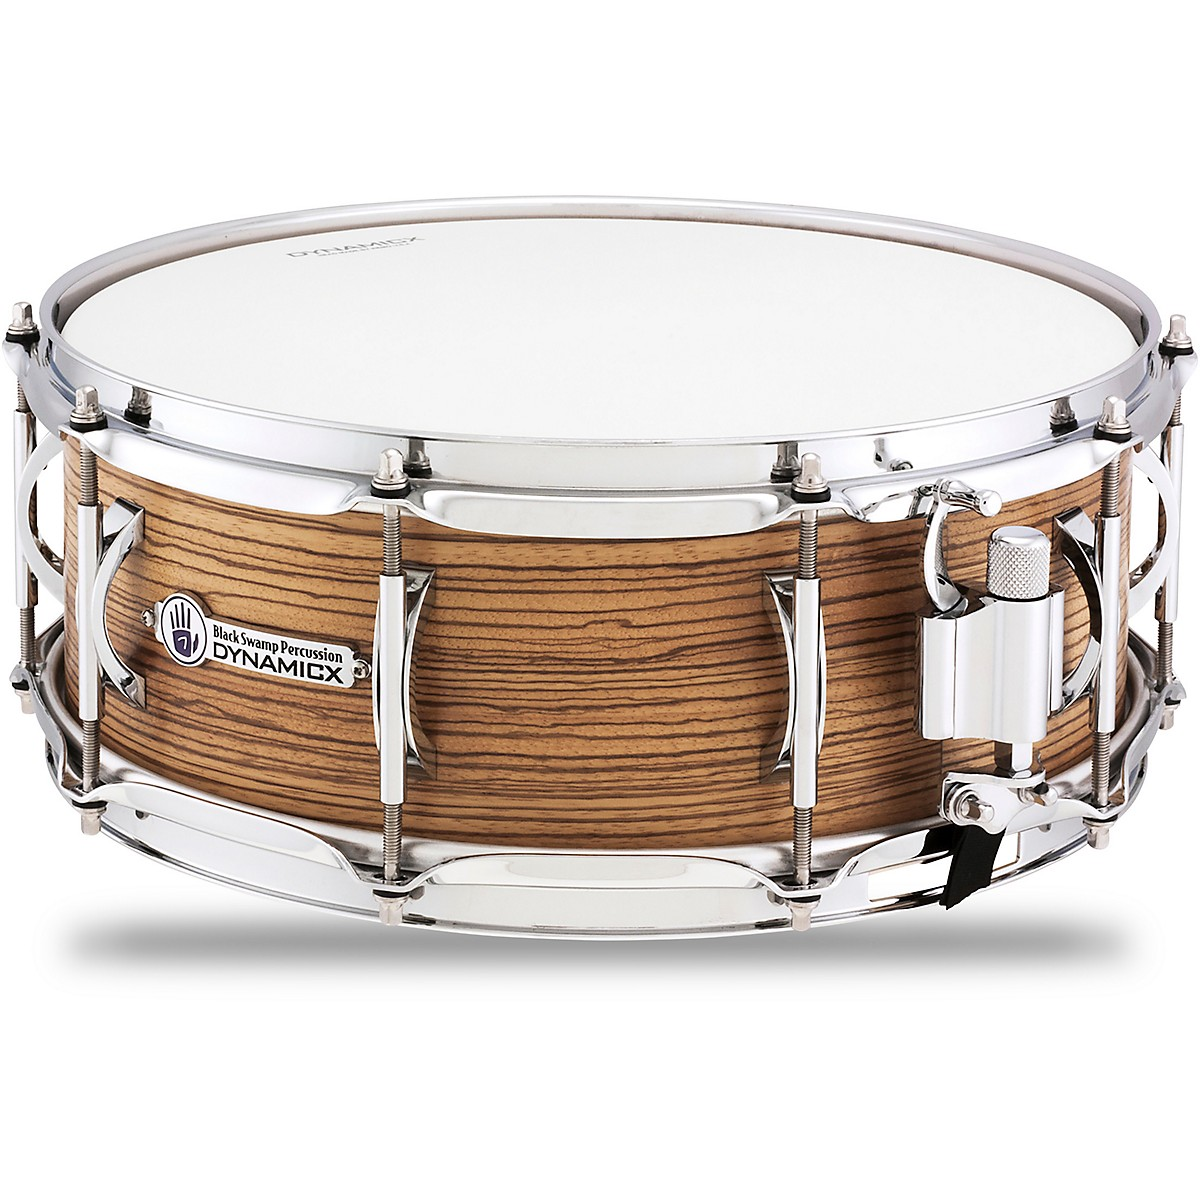 Black Swamp Percussion Dynamicx BackBeat Series Snare Drum with Zebrawood Veneer